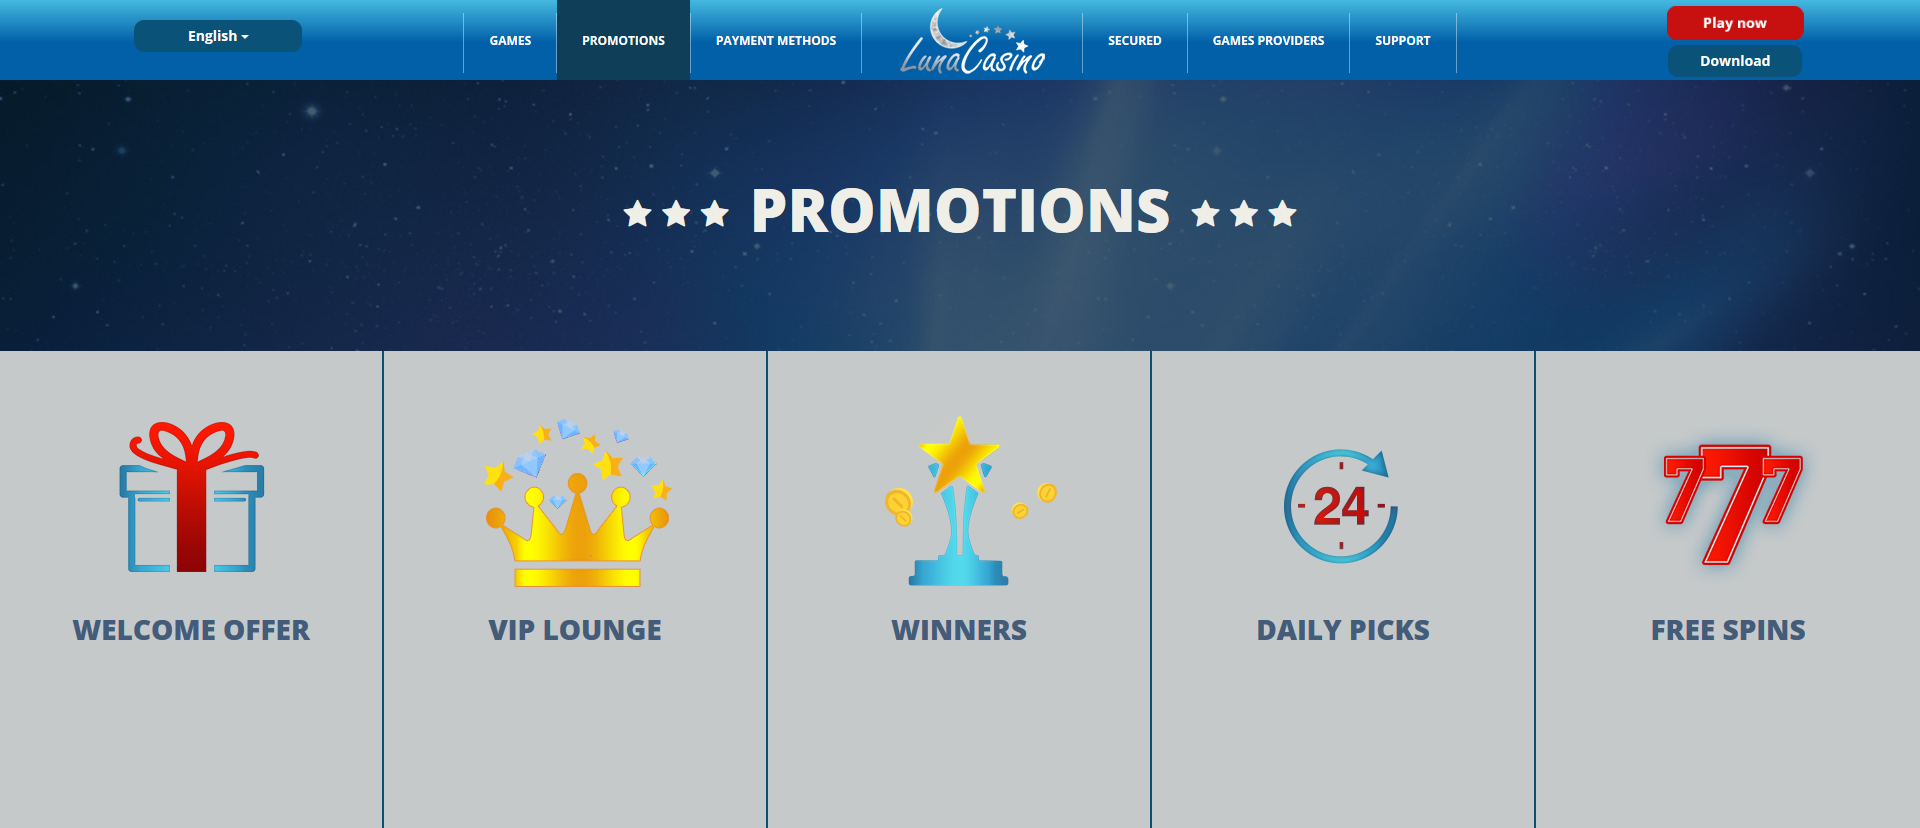 Atlantis Gold Casino Online Review With Promotions & Bonuses